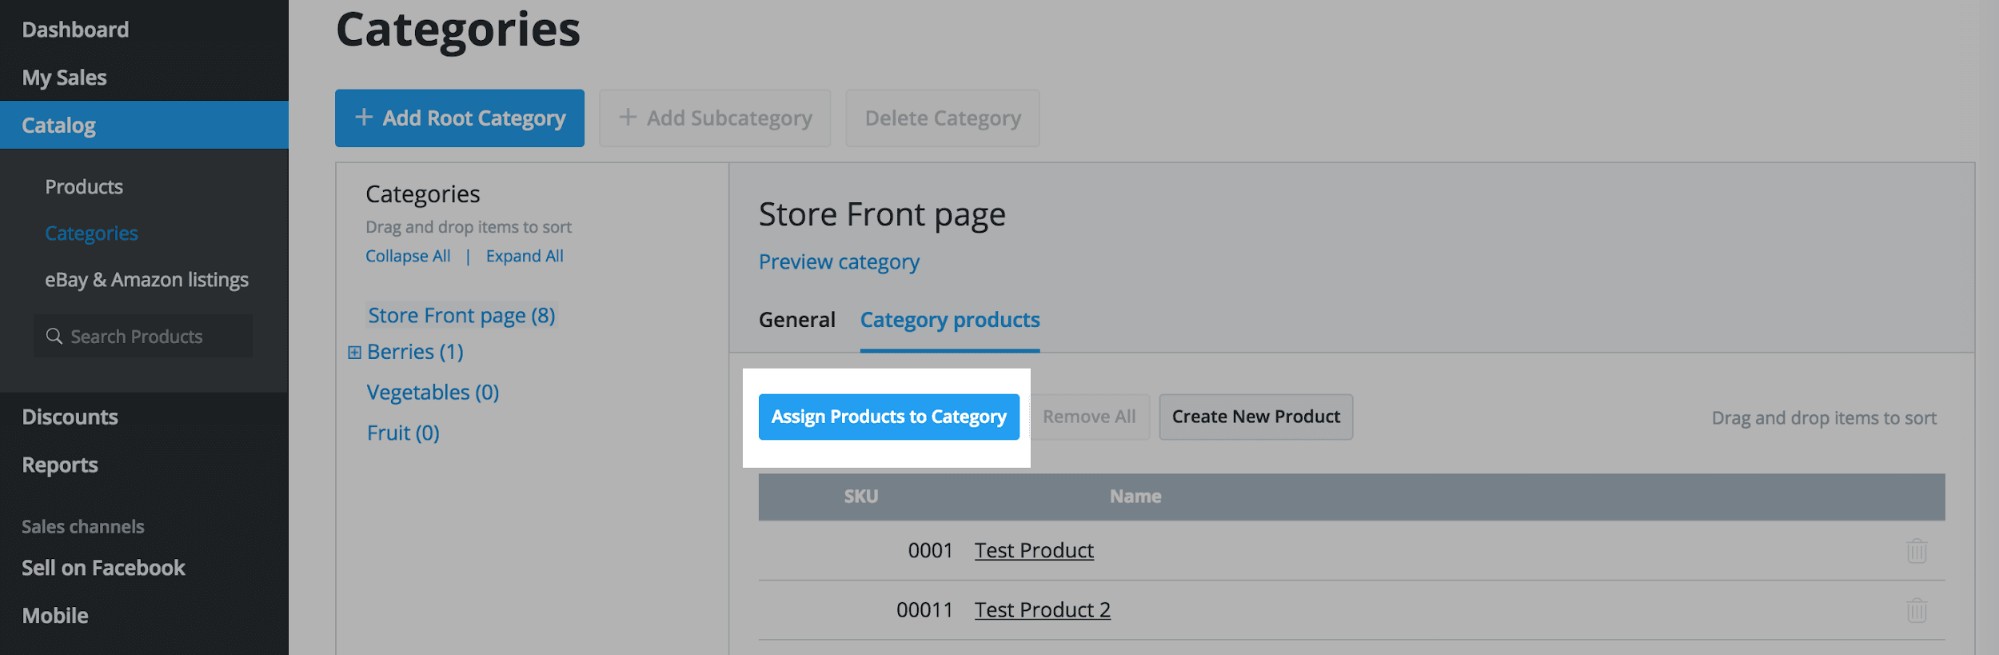 Assign Products to category